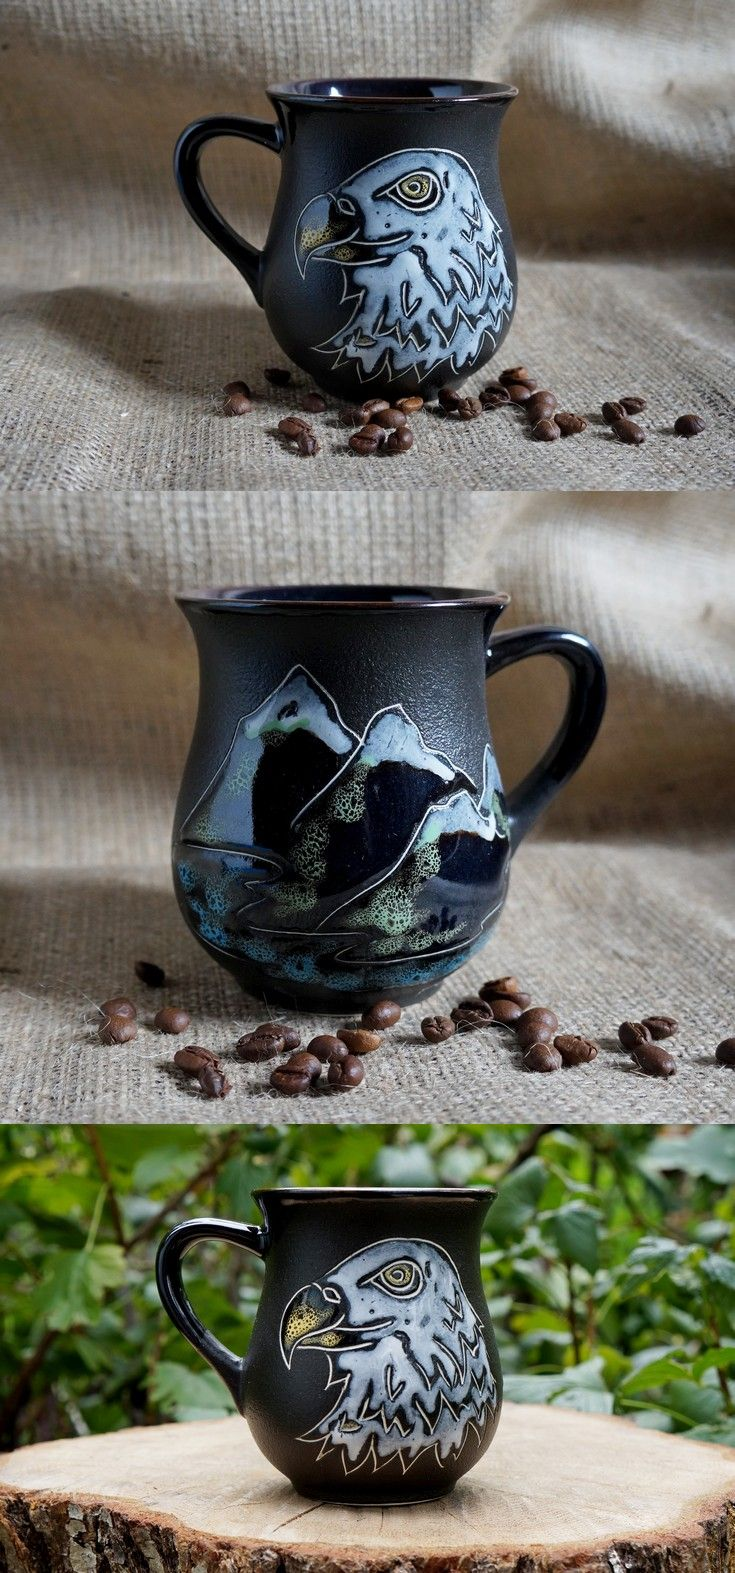 18 50 American Bald Eagle Mug Ceramic Scout Gift Ideas For Boyfriend Tribal